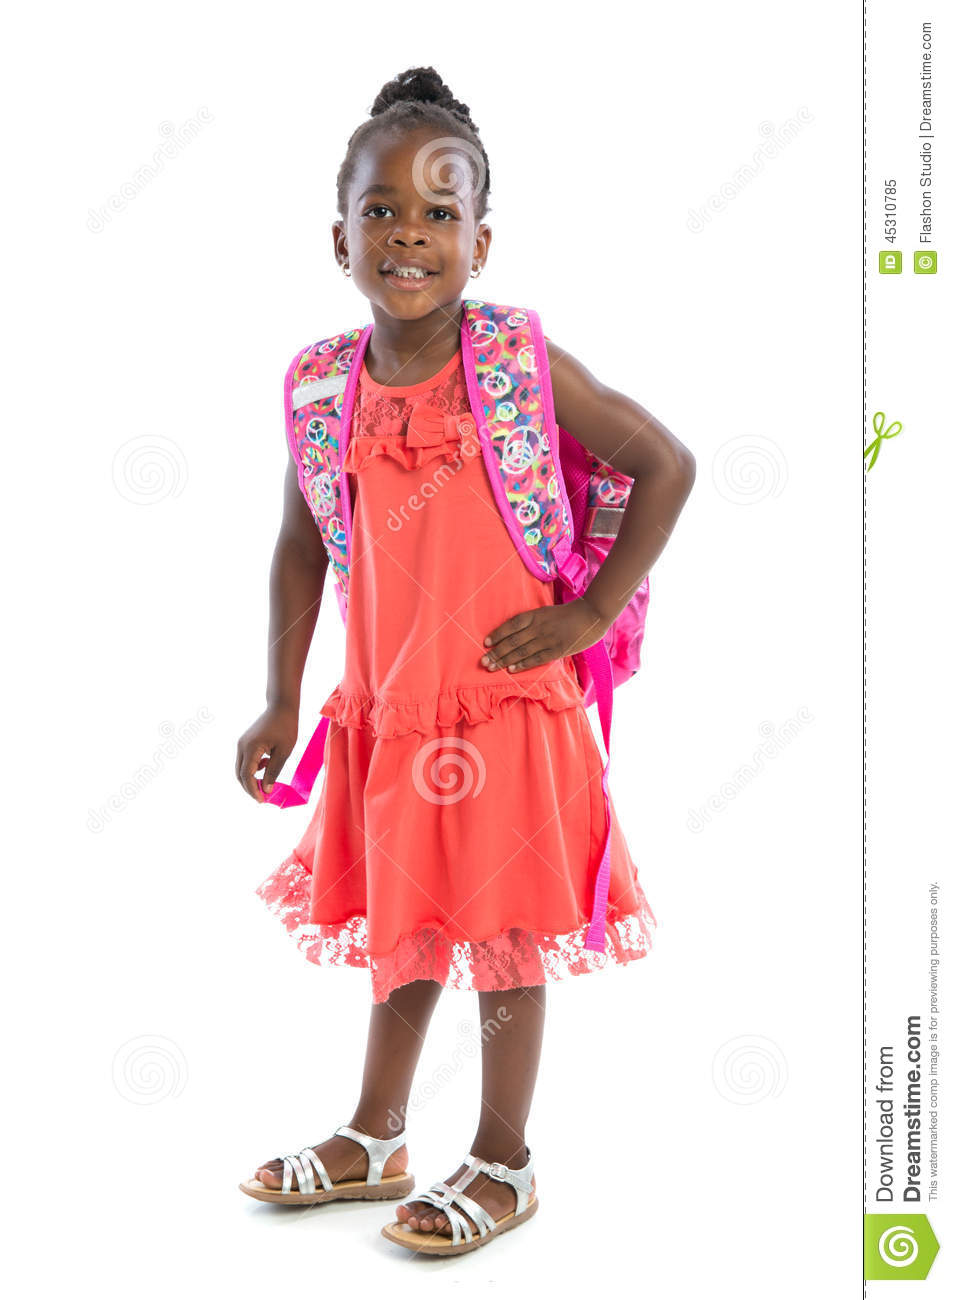 5 Year Old African American Girl Standing Wear Casual